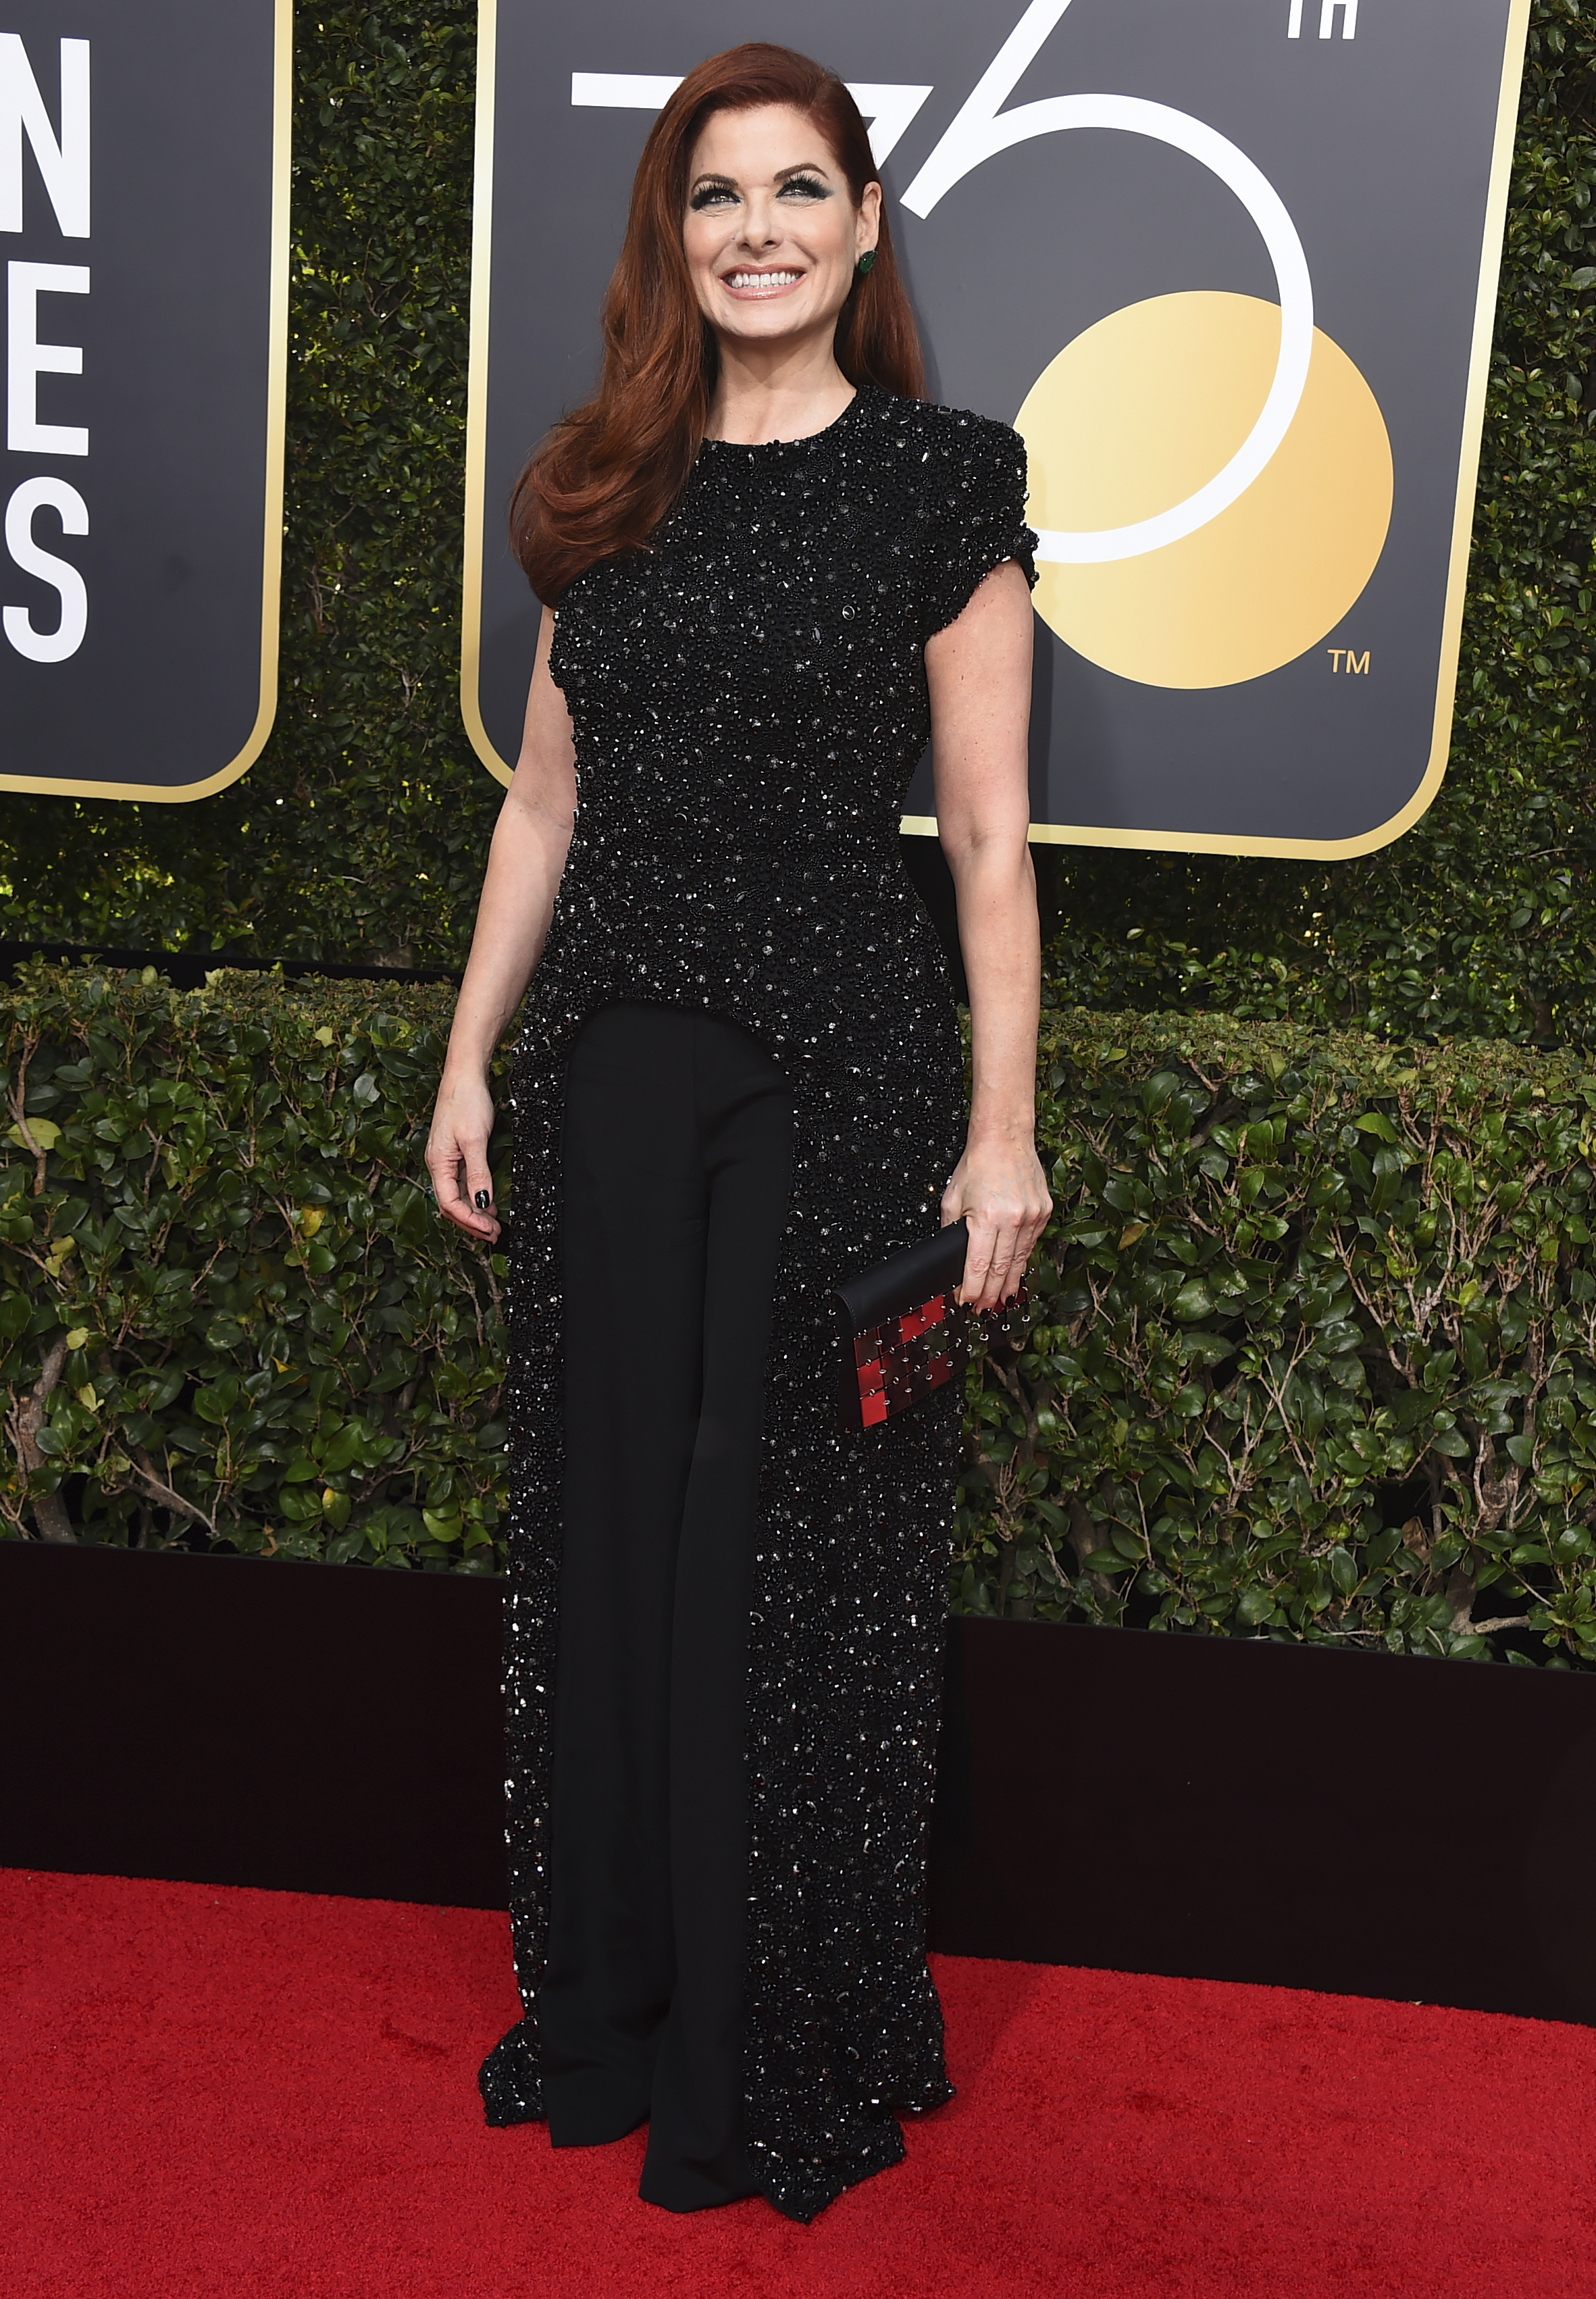 <div class='meta'><div class='origin-logo' data-origin='AP'></div><span class='caption-text' data-credit='Jordan Strauss/Invision/AP'>Debra Messing arrives at the 75th annual Golden Globe Awards at the Beverly Hilton Hotel on Sunday, Jan. 7, 2018, in Beverly Hills, Calif.</span></div>